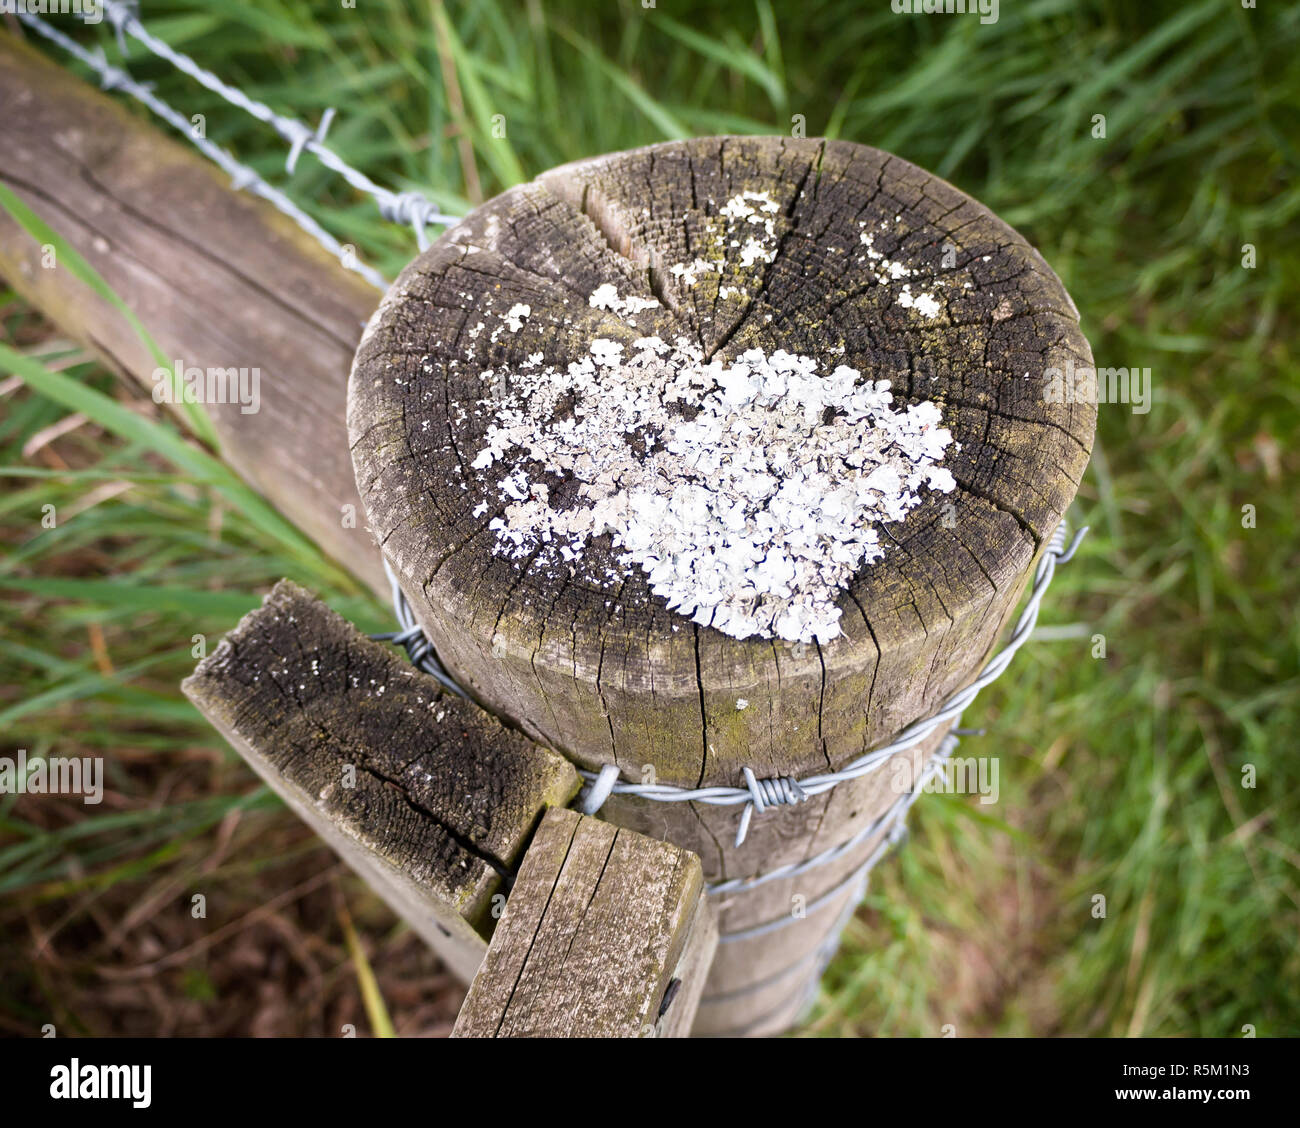 strange white moss fungus growing on a wooden post countryside outside Stock Photo